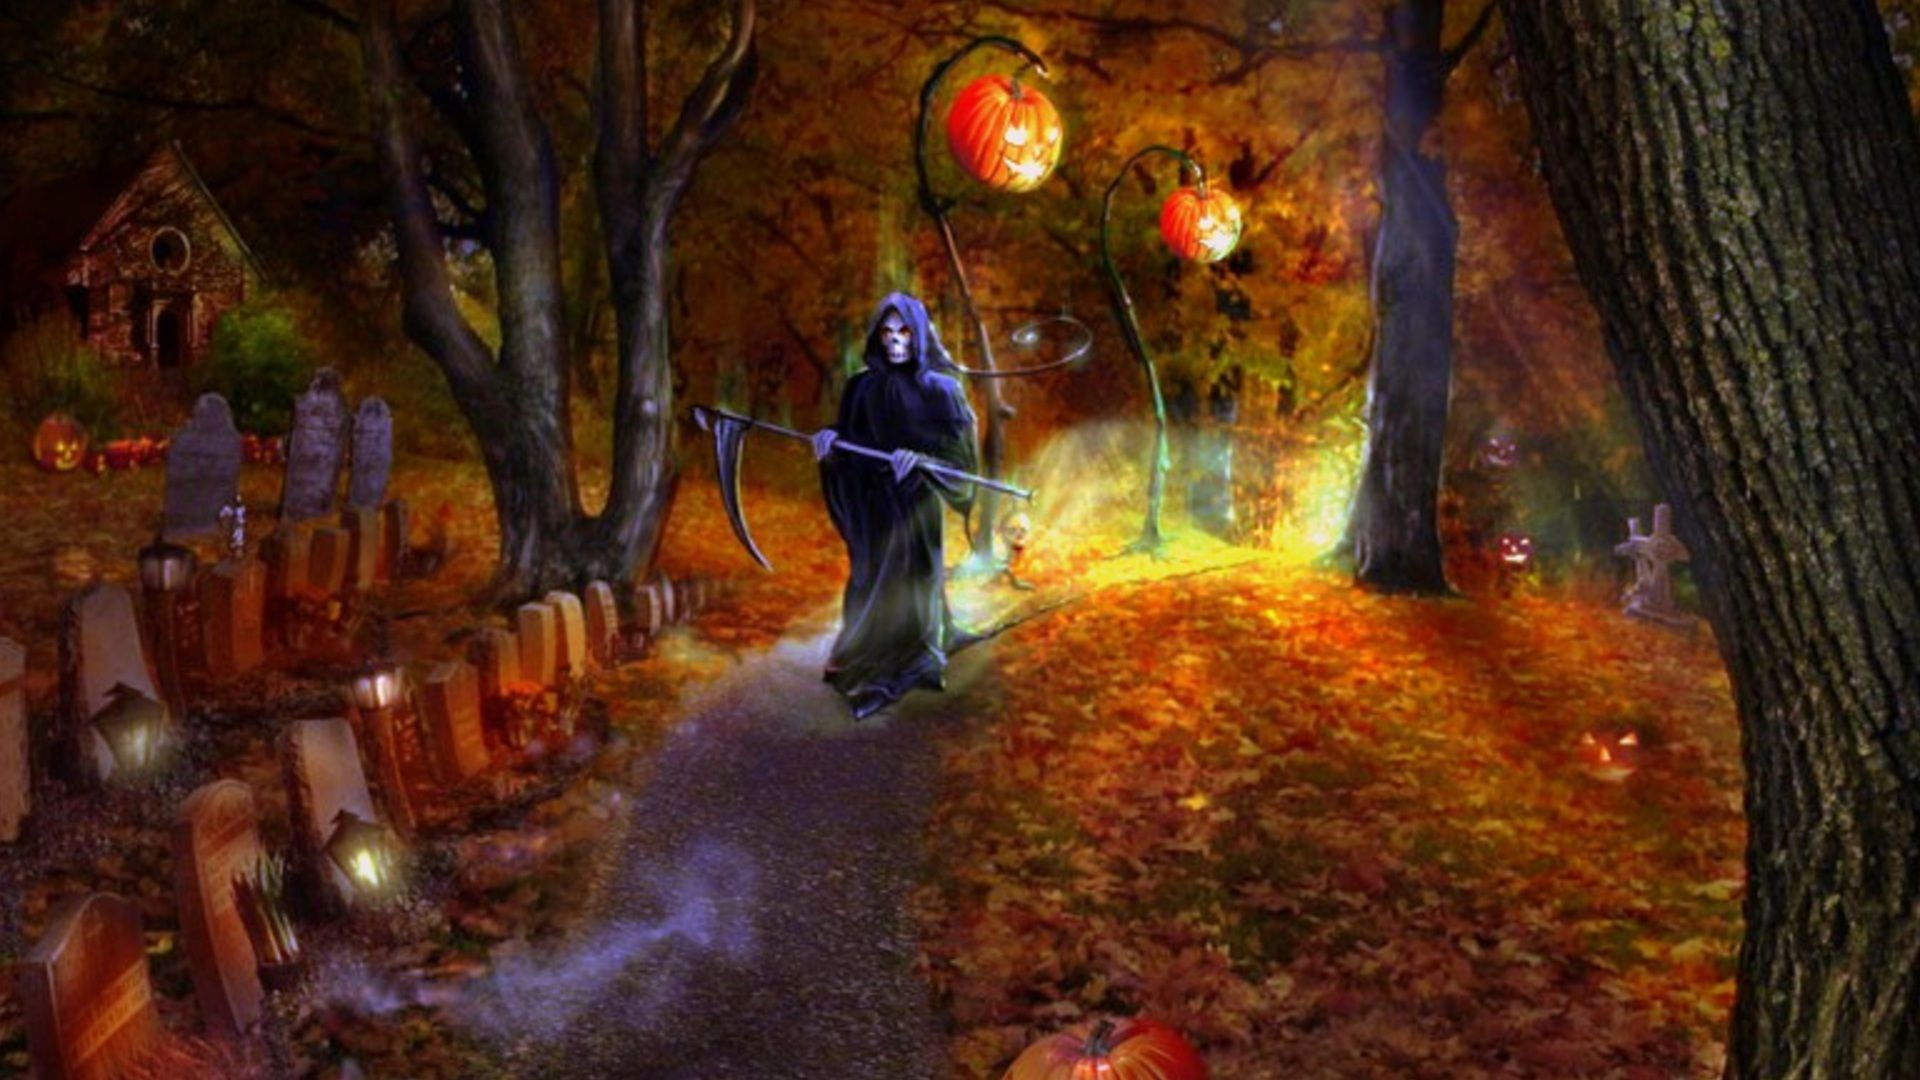 Halloween Wallpapers Halloween Illustration Halloween Wallpaper Halloween Art